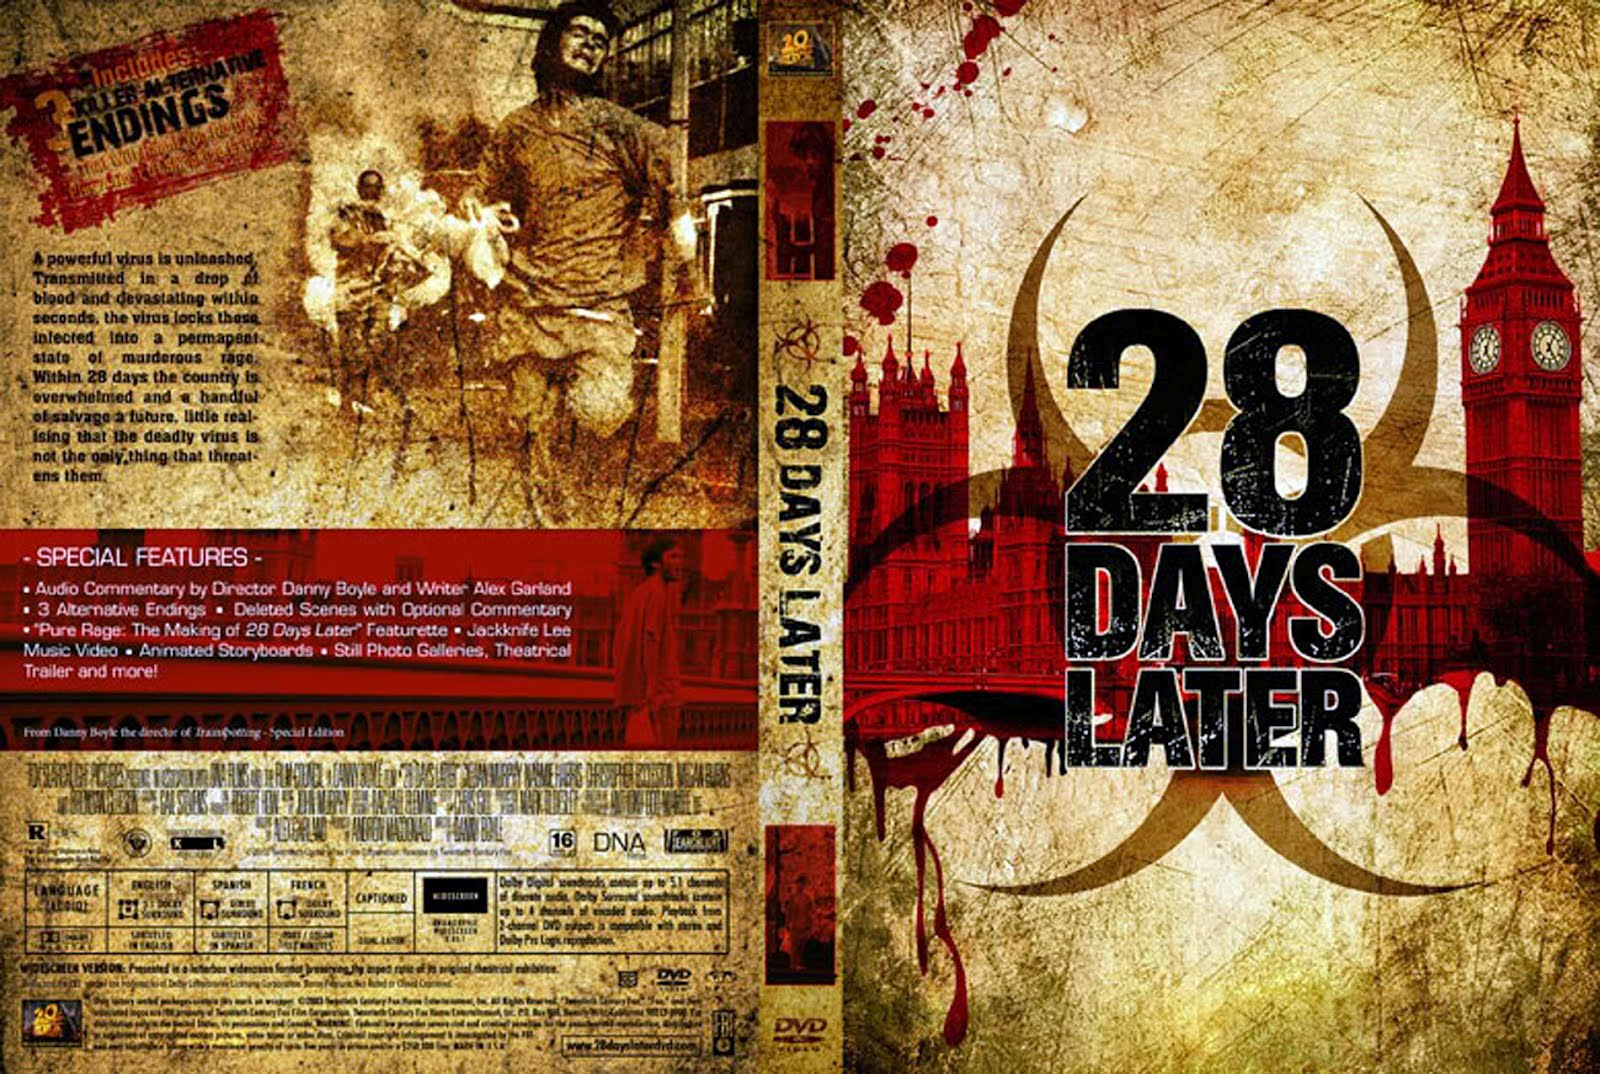 28-days-later-movie-dvd-cover.jpg